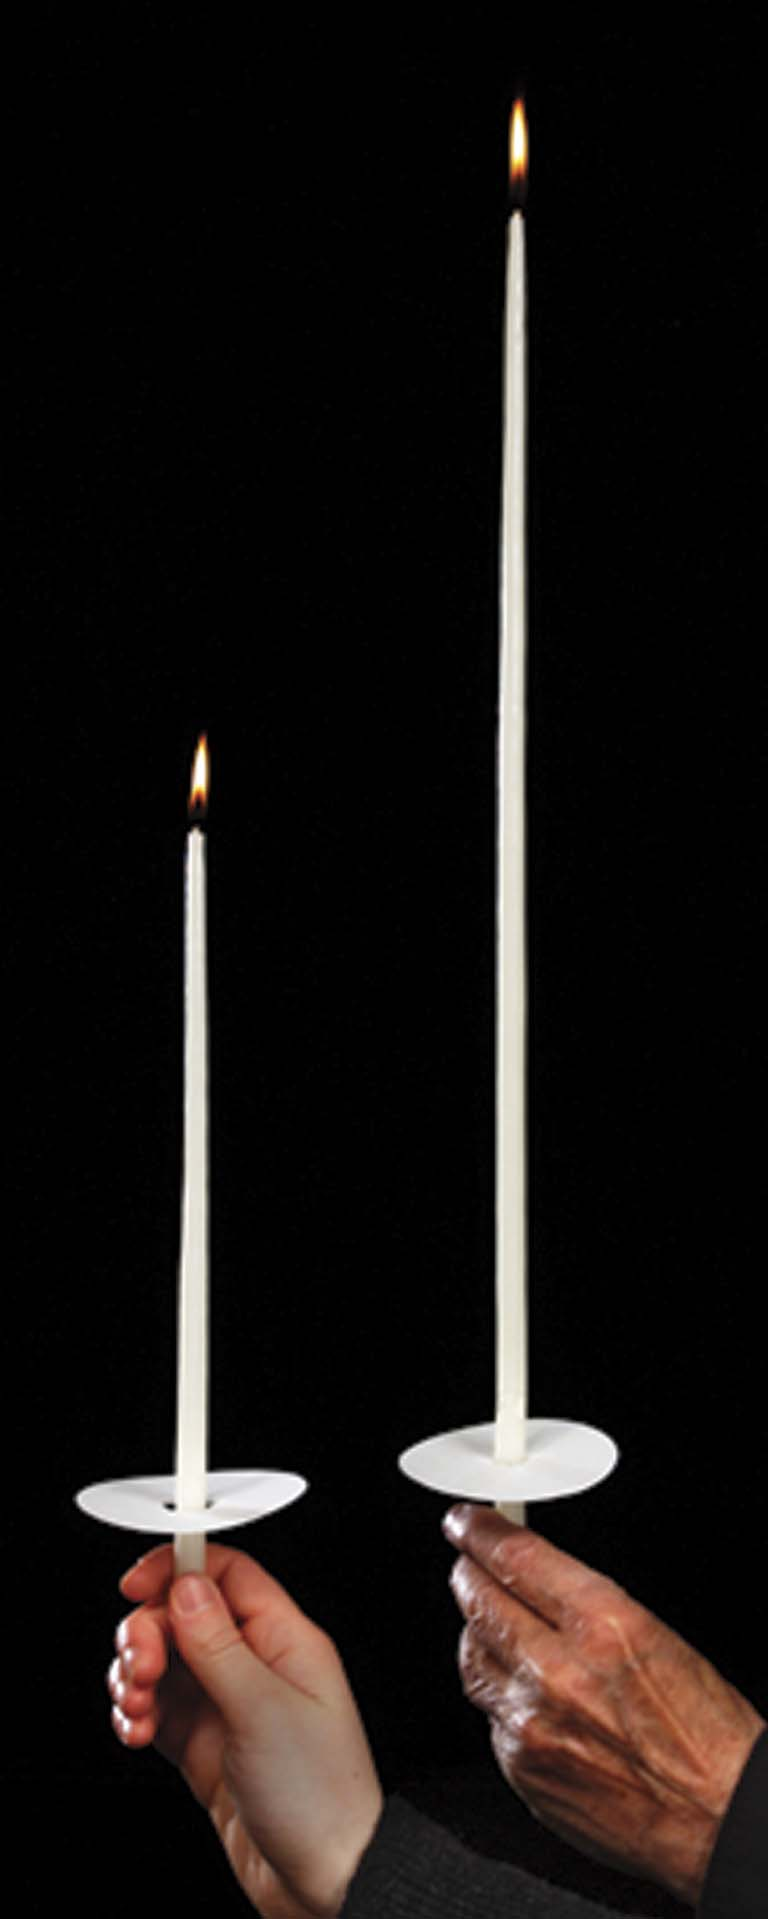 "18"" Congregational Taper Candles 18"" Congregational Taper Candles, 51% Beeswax,81102801"